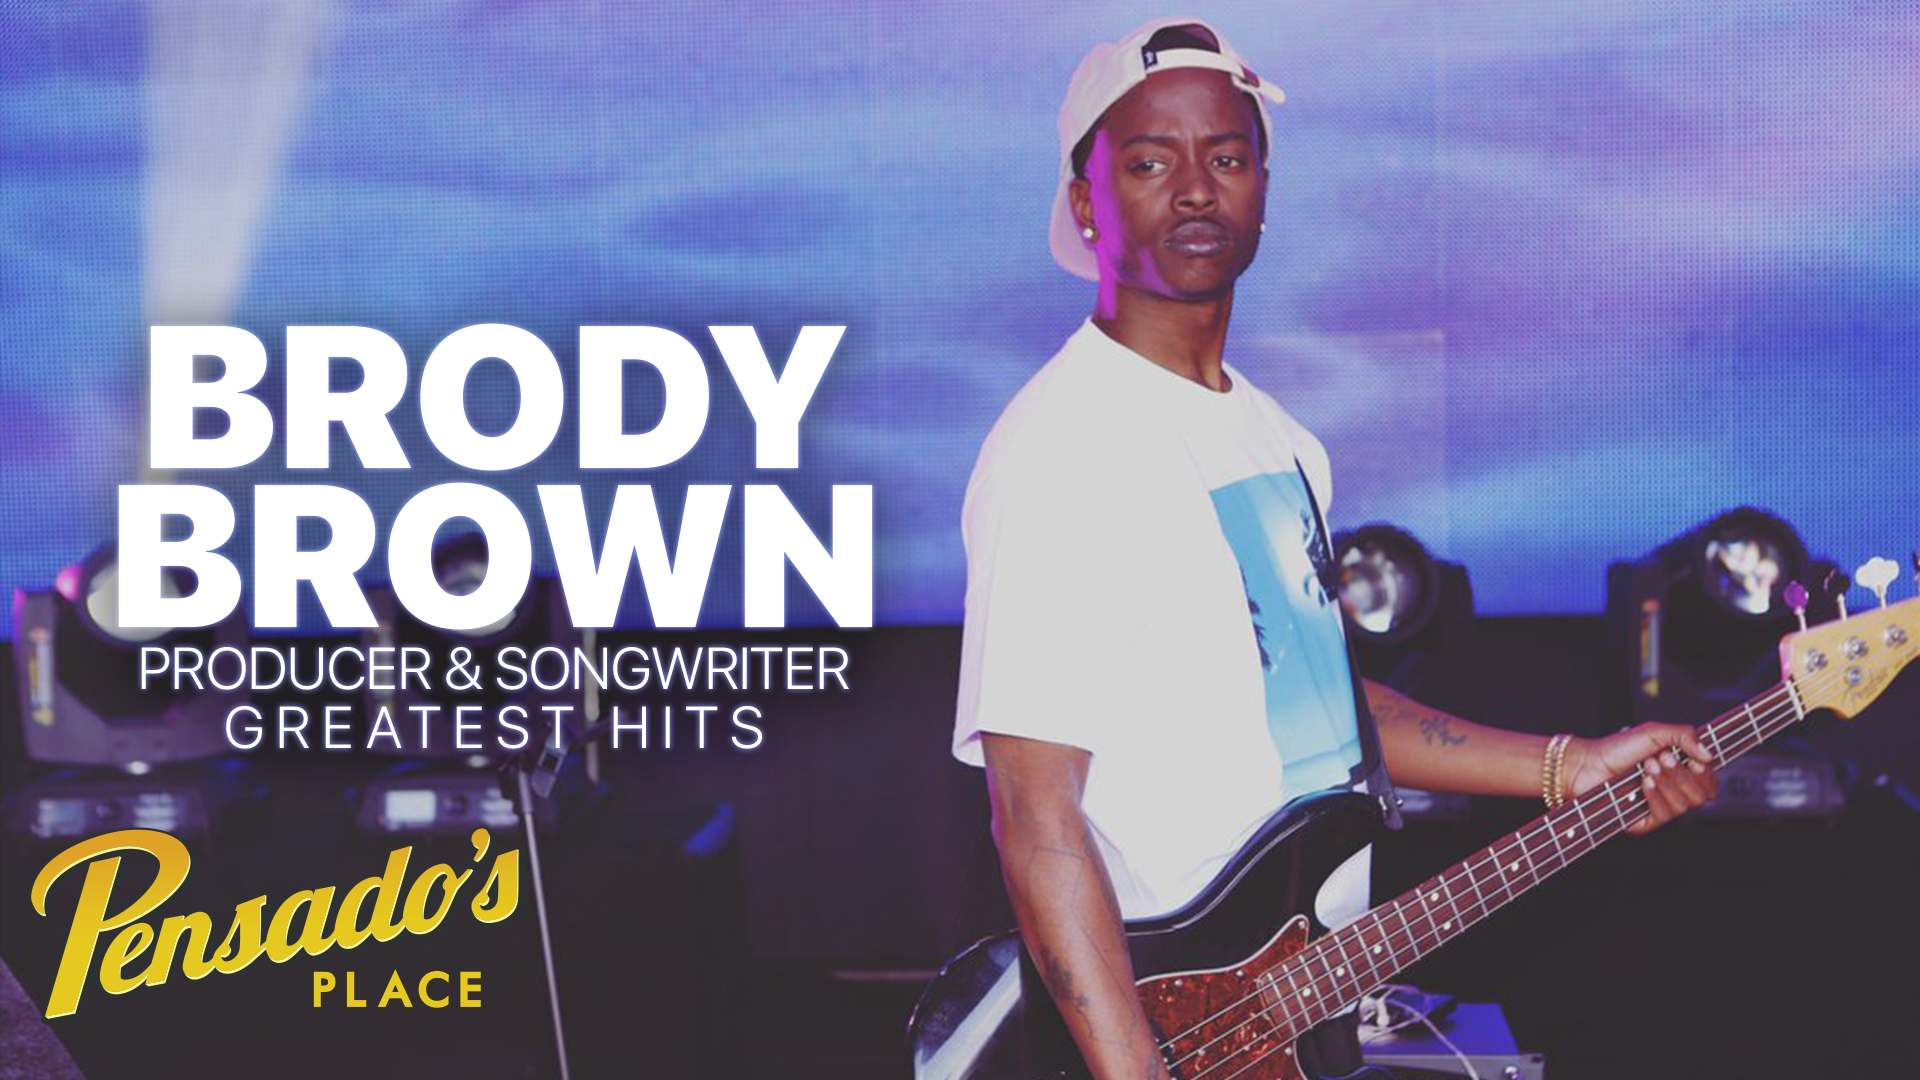 Greatest Hits: Grammy Award Winning Songwriter / Producer, Brody Brown